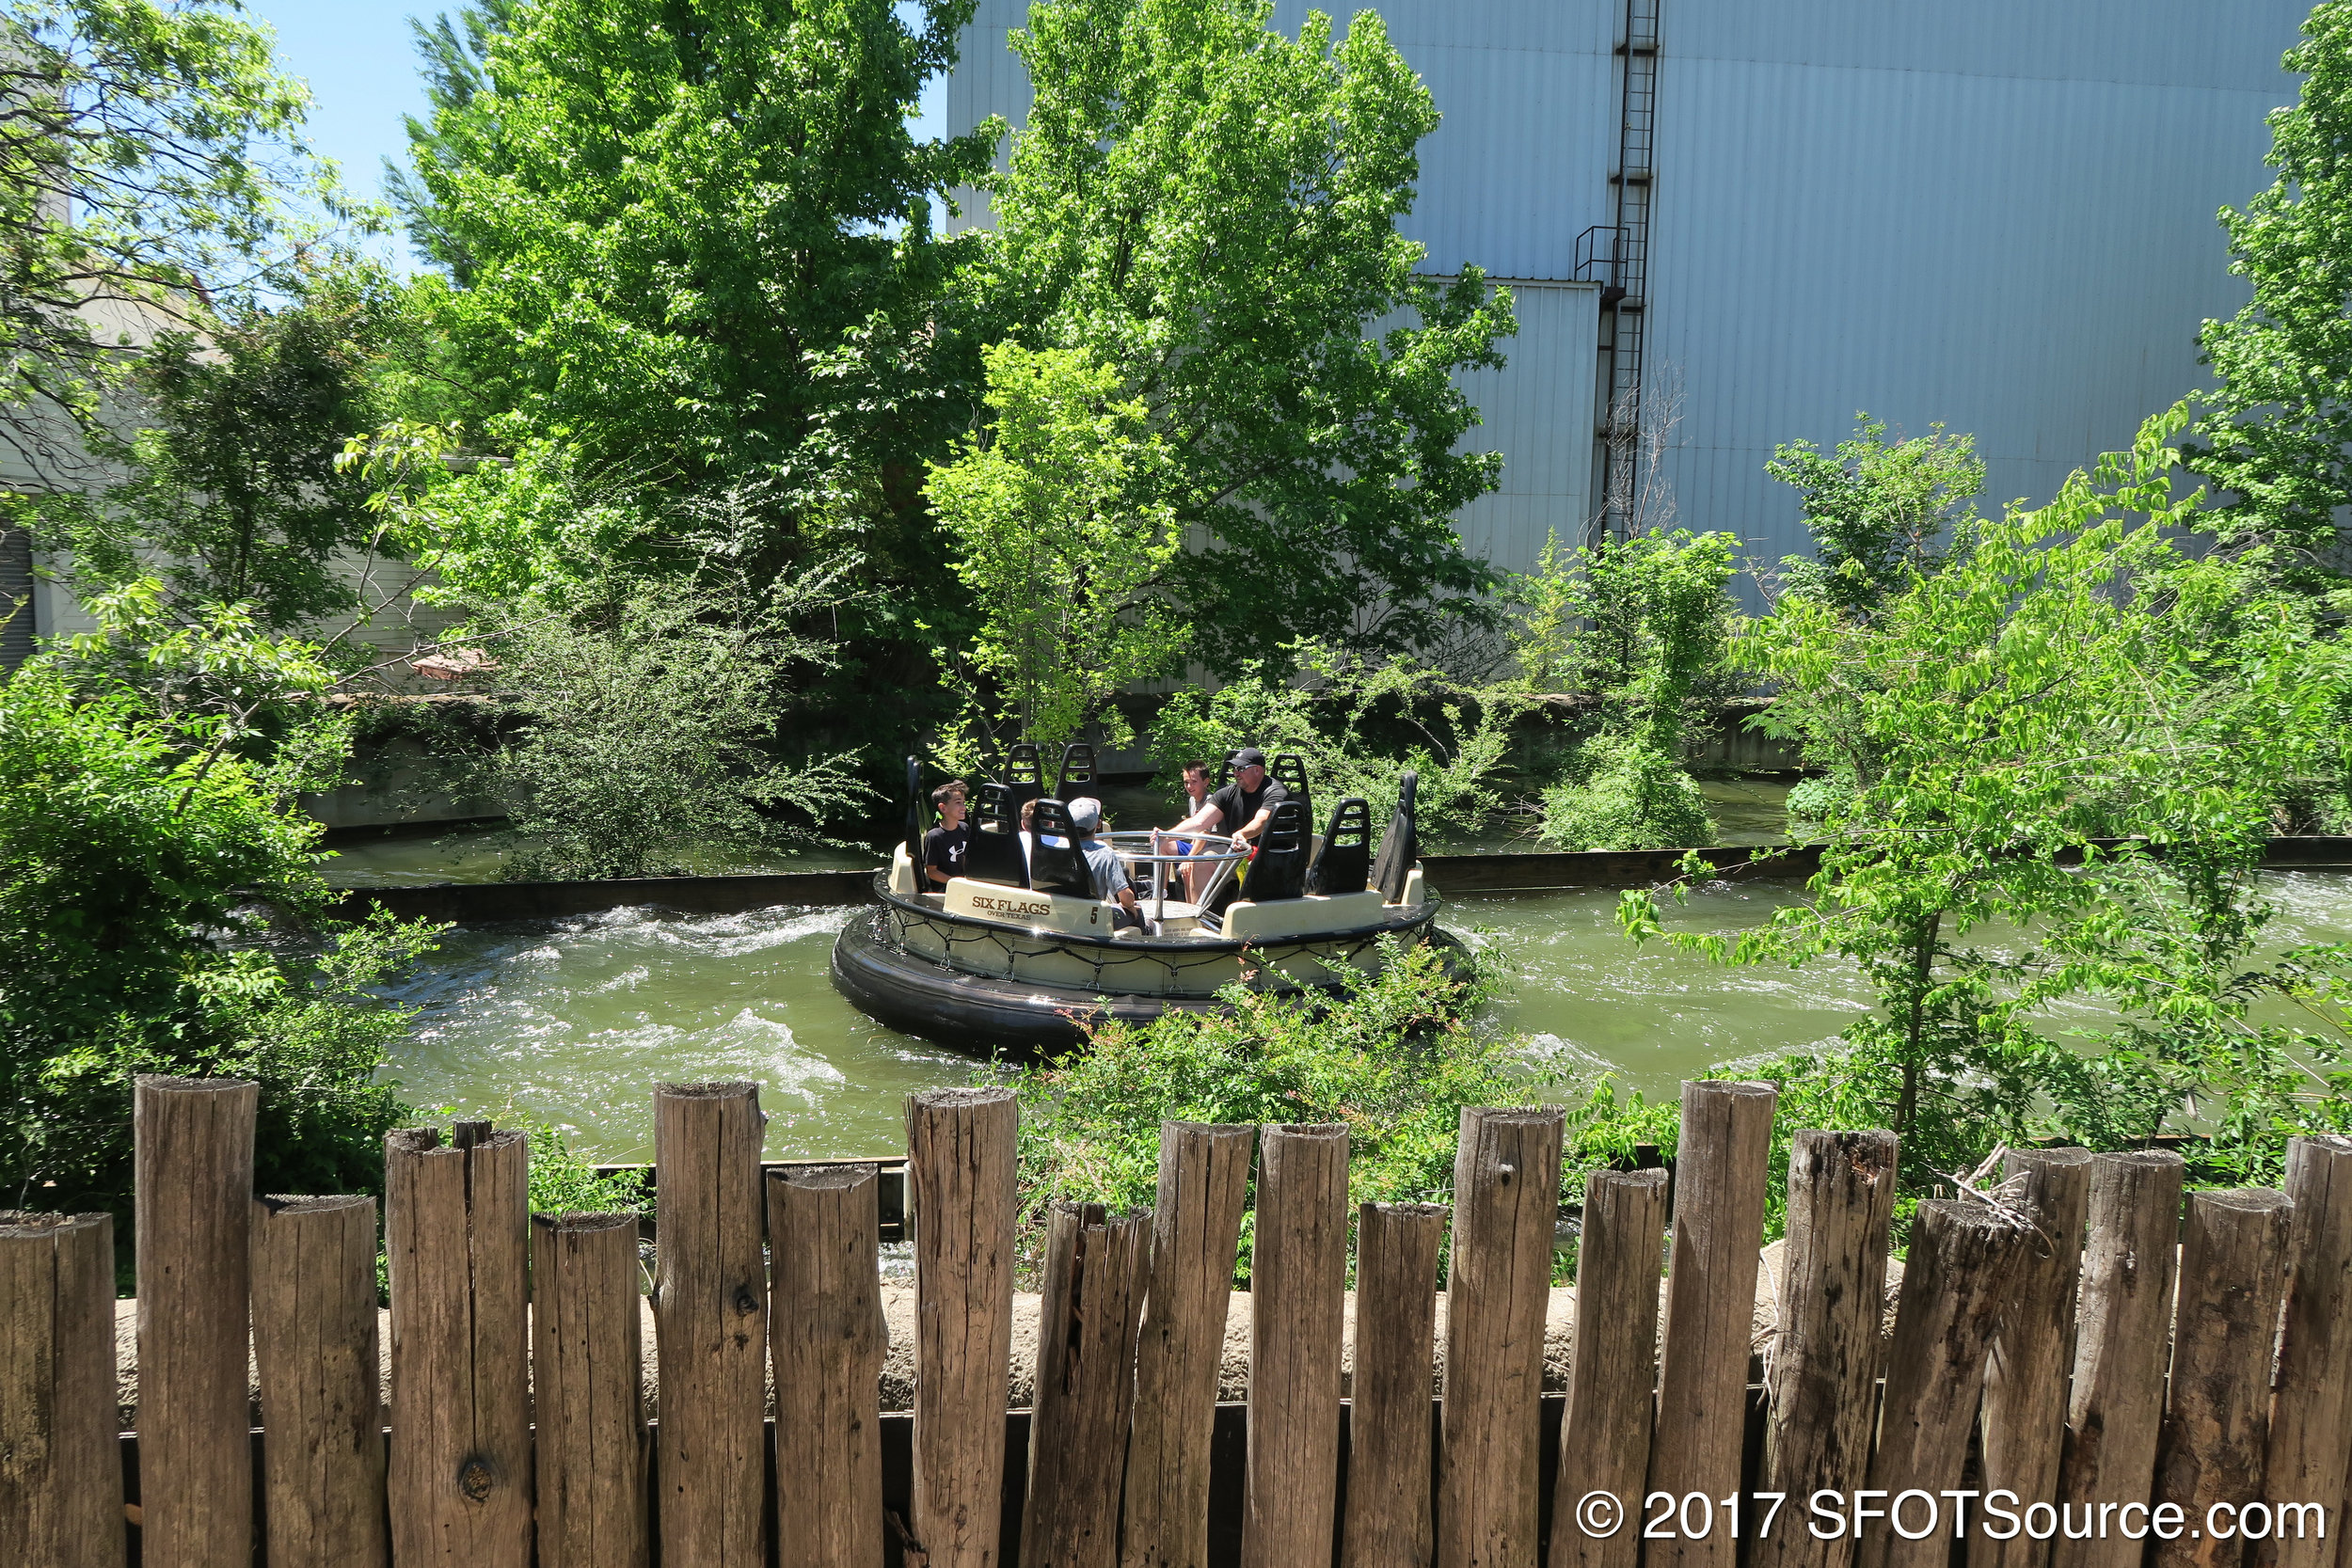 A boat near the beginning of the ride's layout.